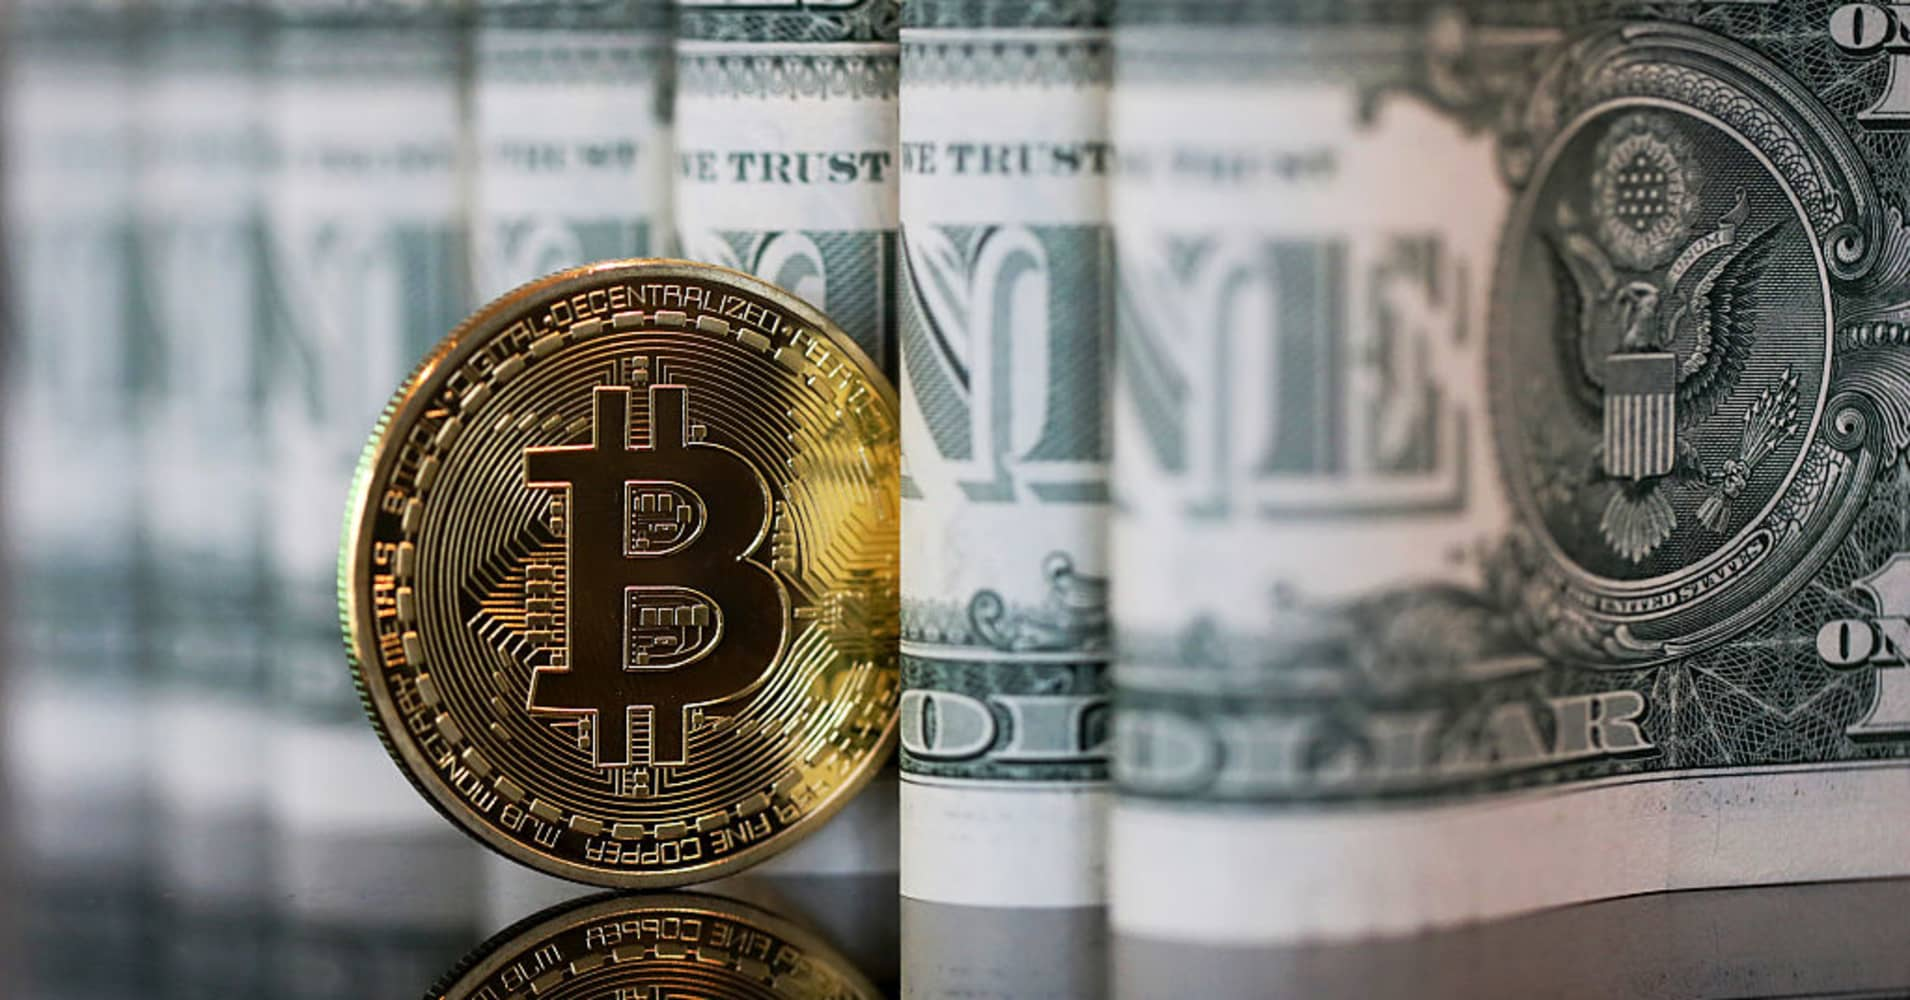 Bitcoin value rises over $1 billion as Japan, Russia move to legitimize cryptocurrency - CNBC